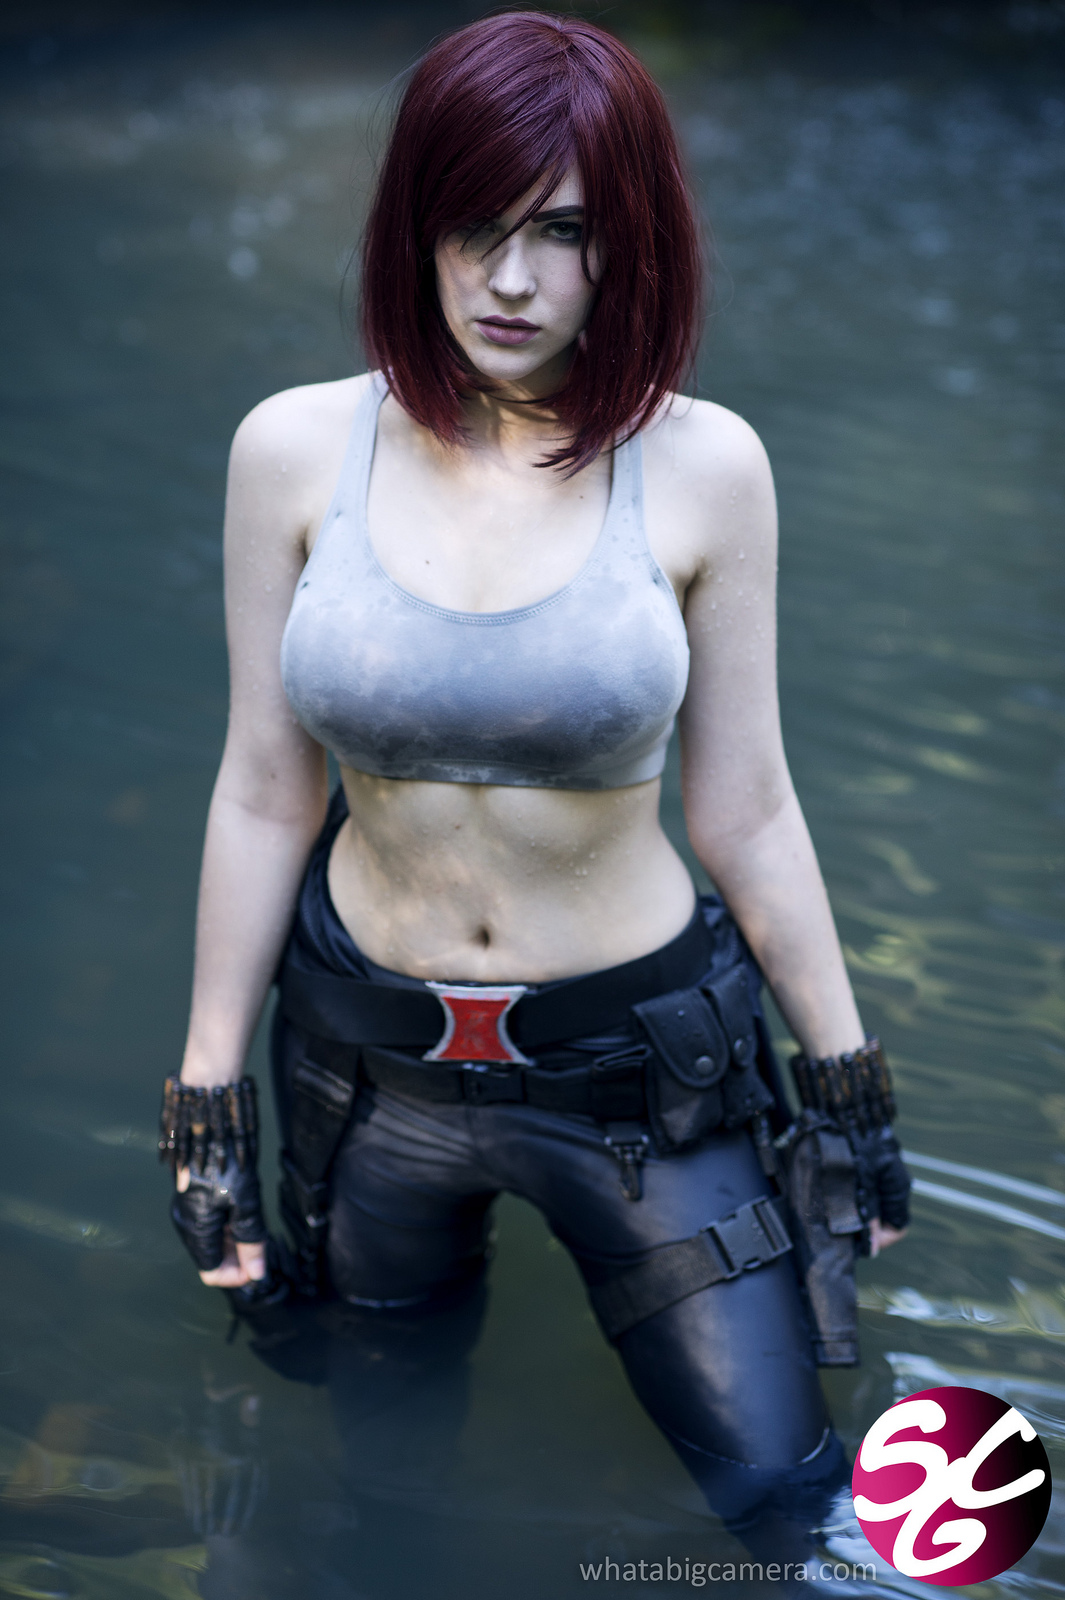 Black widow hot naked cosplay sexy gallery